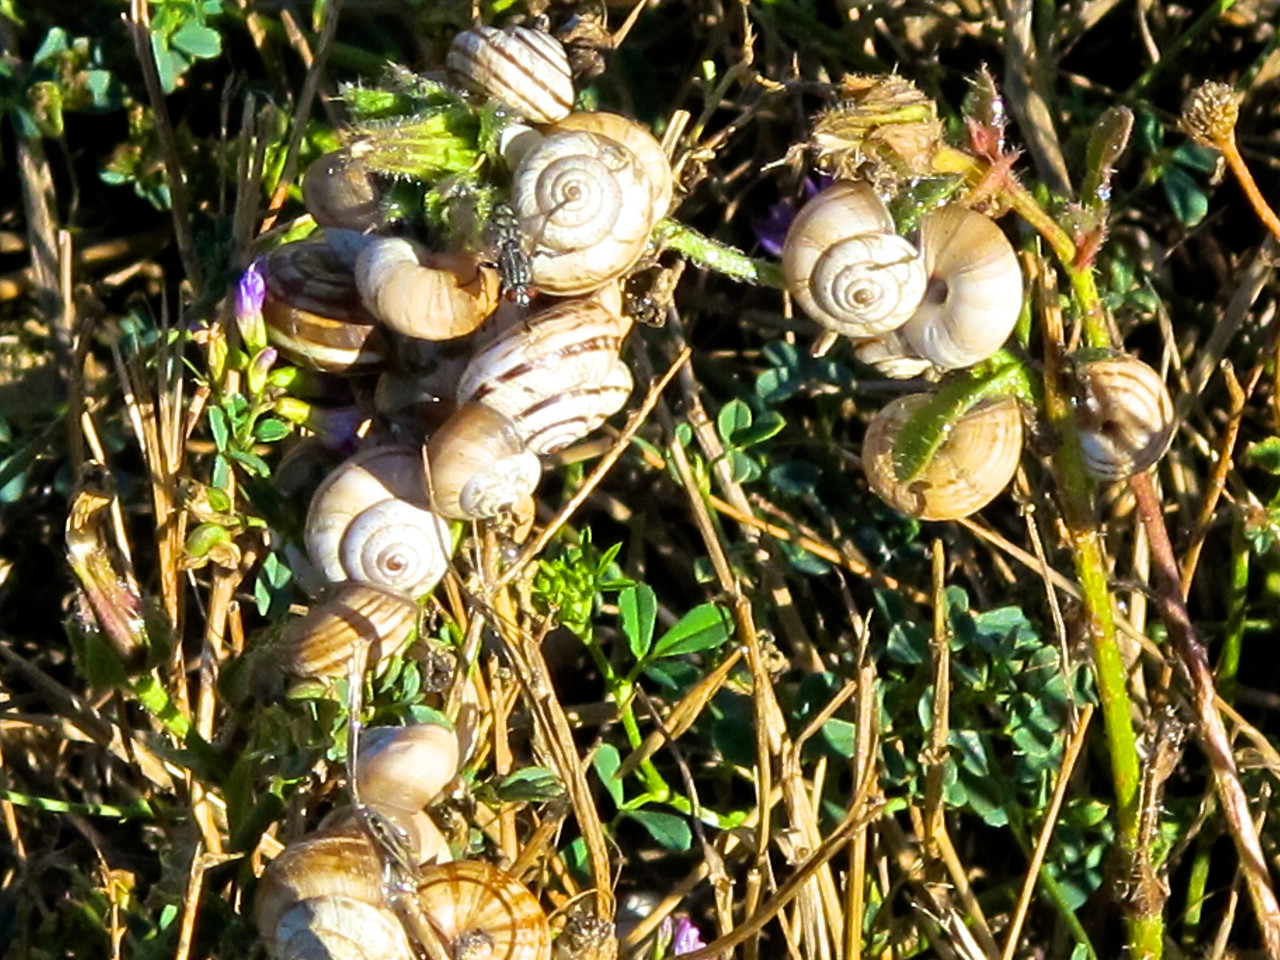 There are lots of snails and slugs in the area.